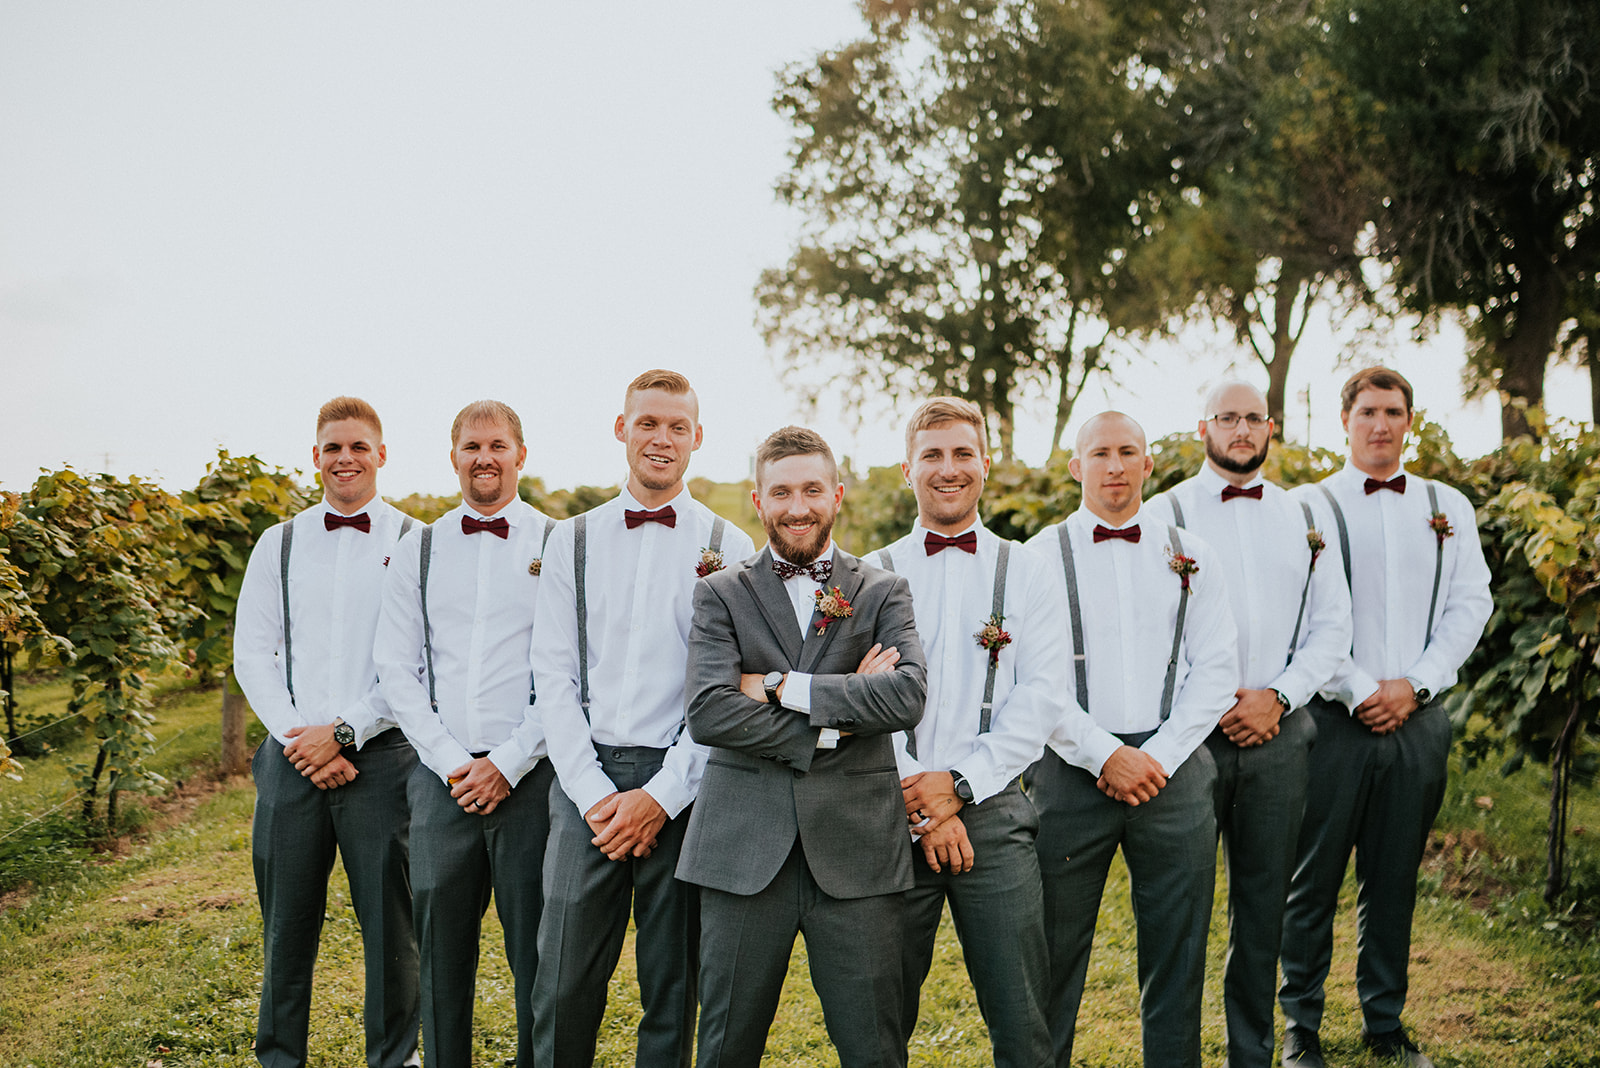 overthevineswisconsinwedding_0873.jpg